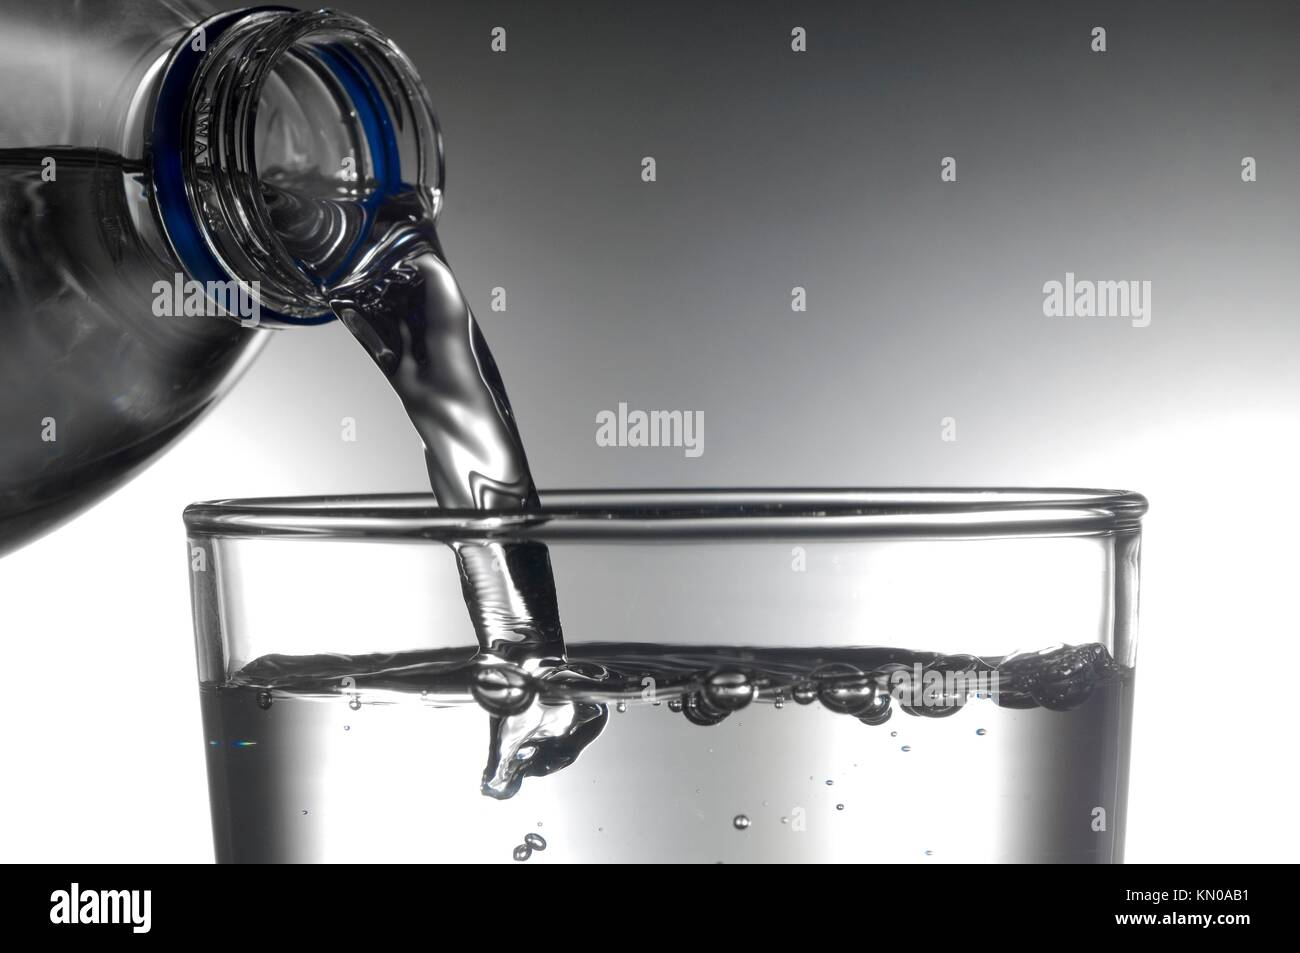 serving water bottle in a glass - Stock Image